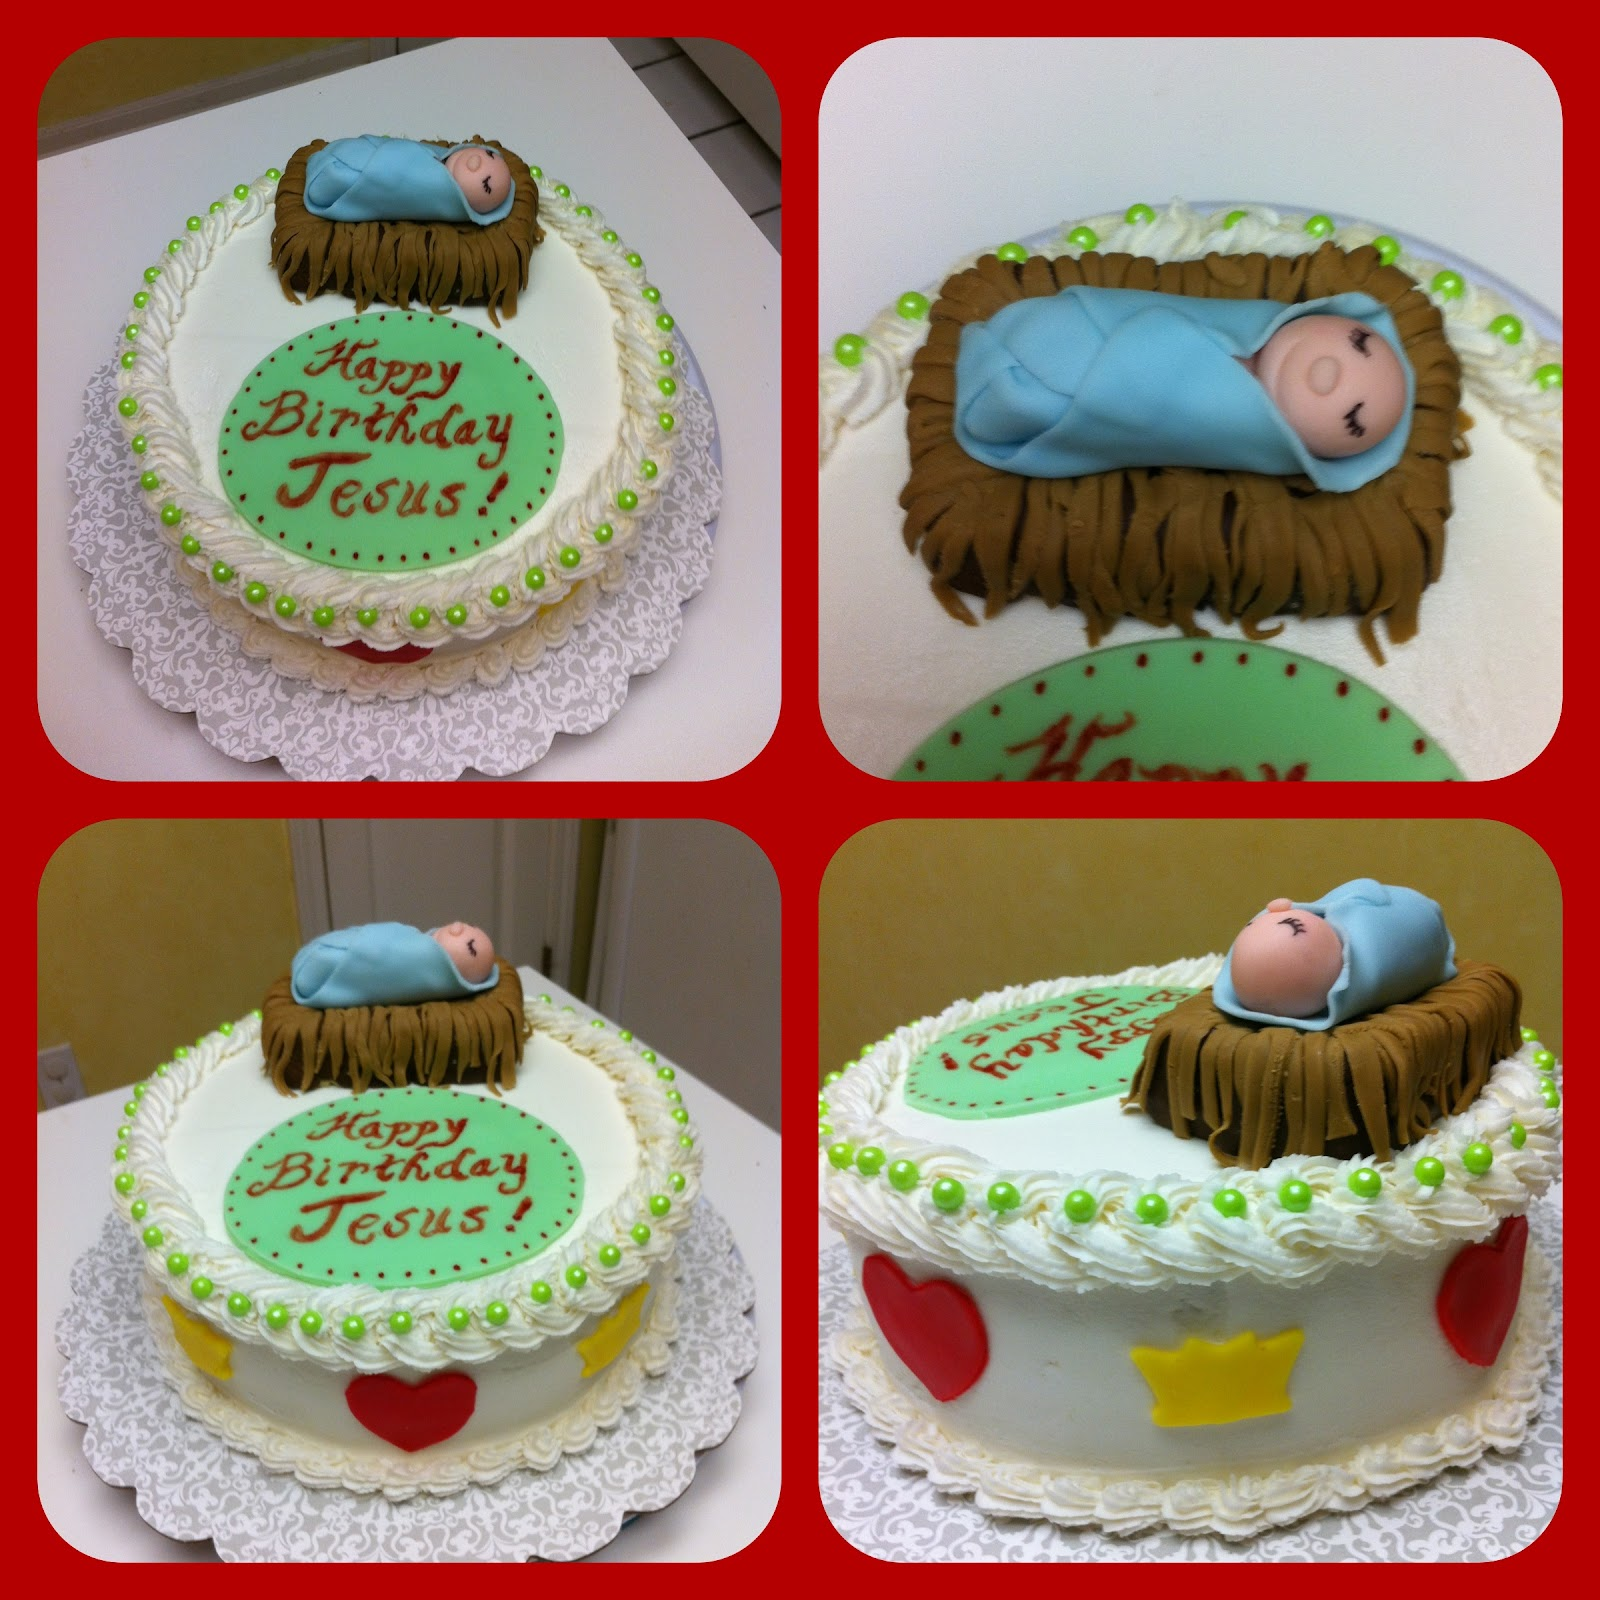 Gingerly Created Confections Happy Birthday Jesus Cake